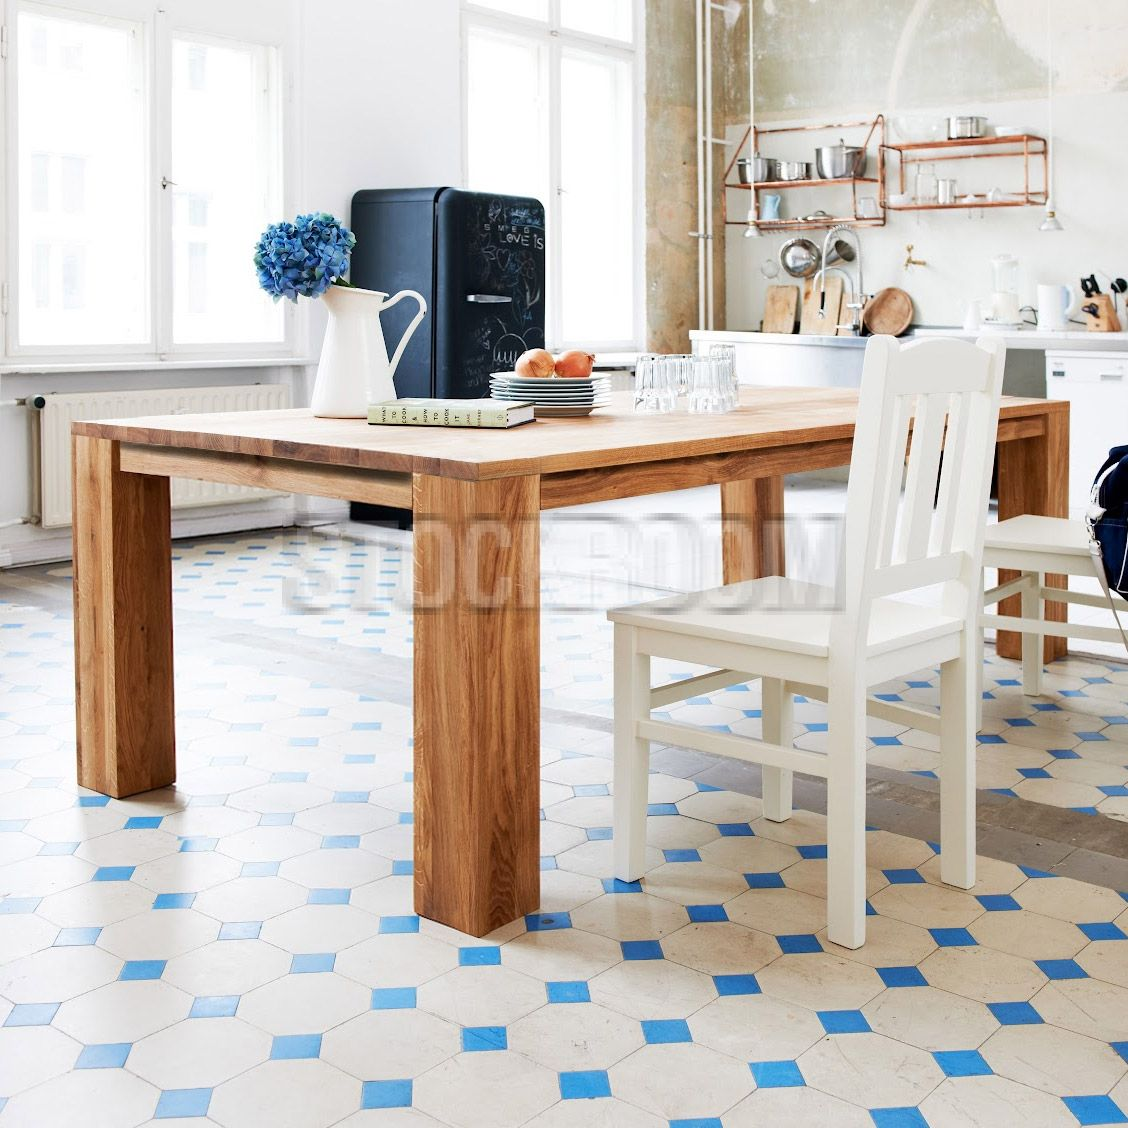 STOCKROOM Hong Kong Furniture Outlet Solid Oak Wood And Reclaimed Dining Table Working Desk Console All On Sale Now With Discounted Price